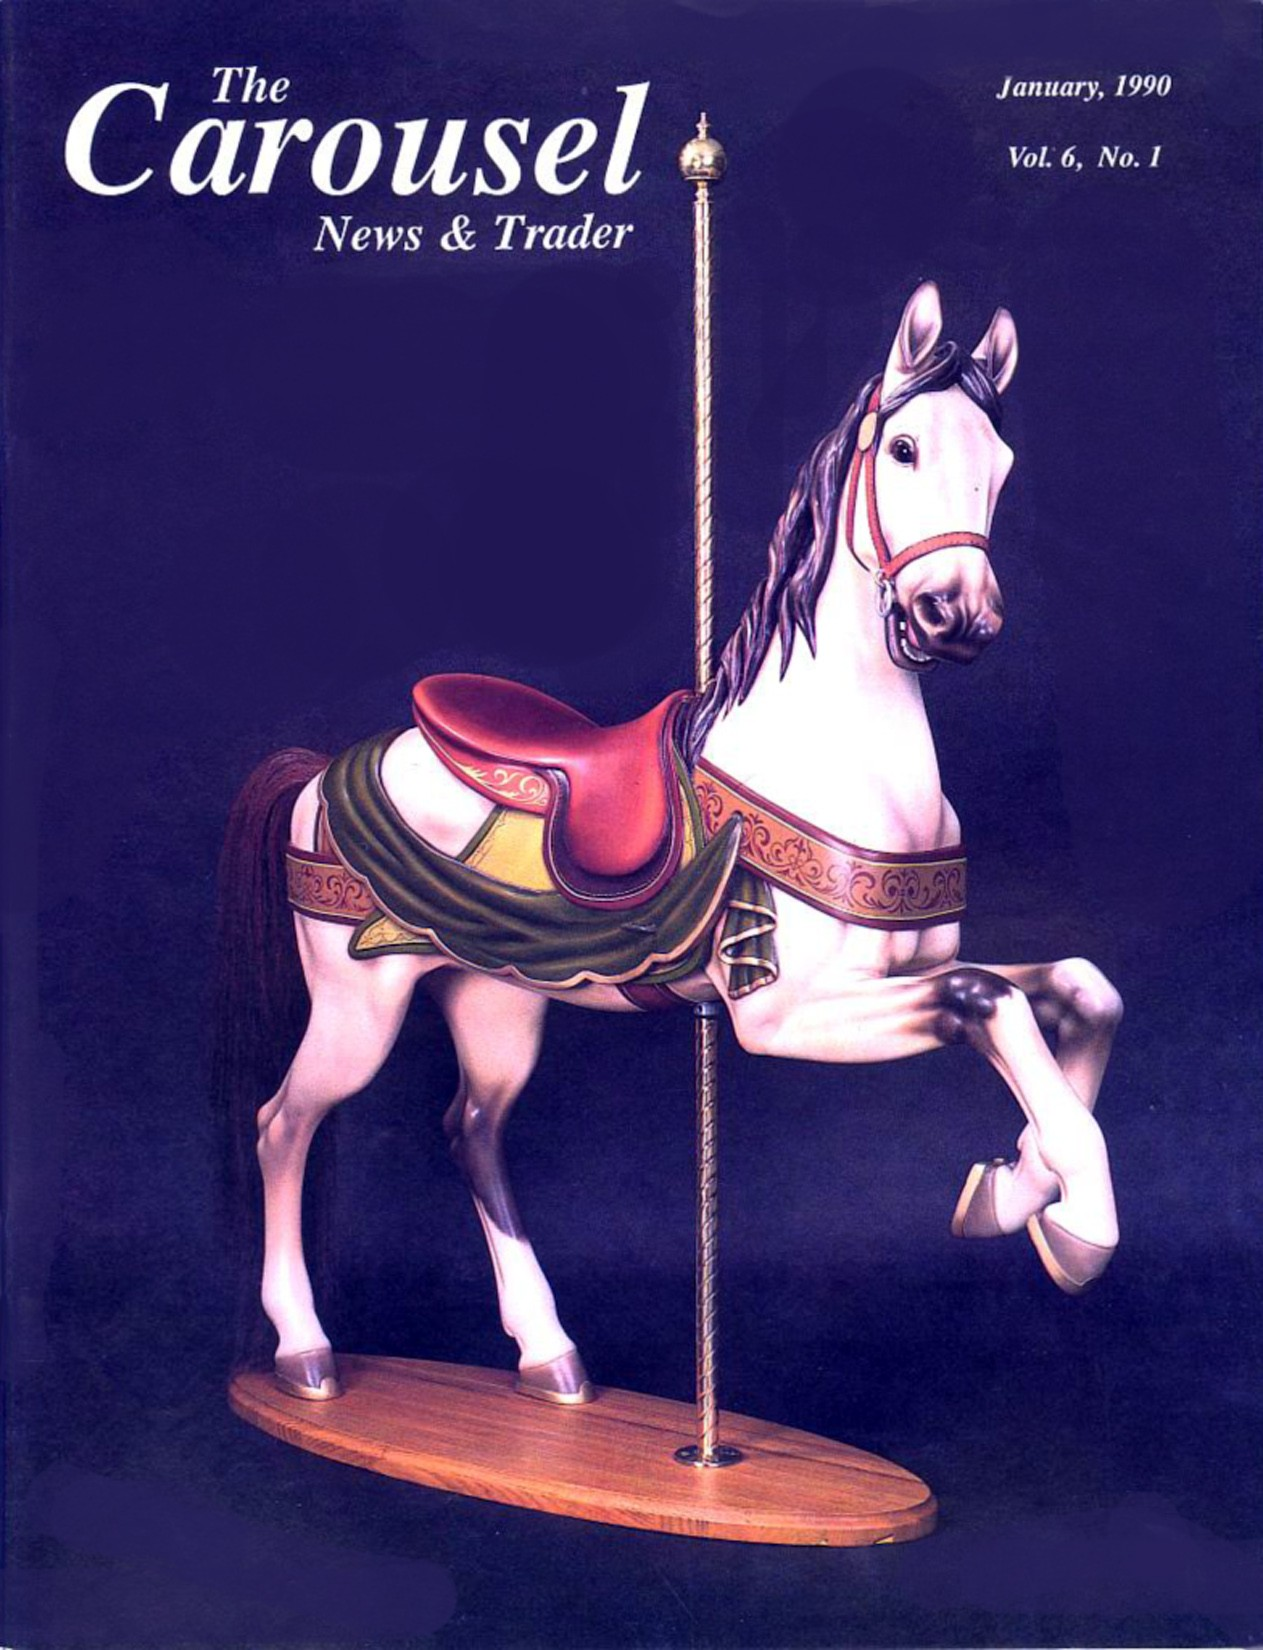 Issue No. 1, Vol. 6 – January 1990